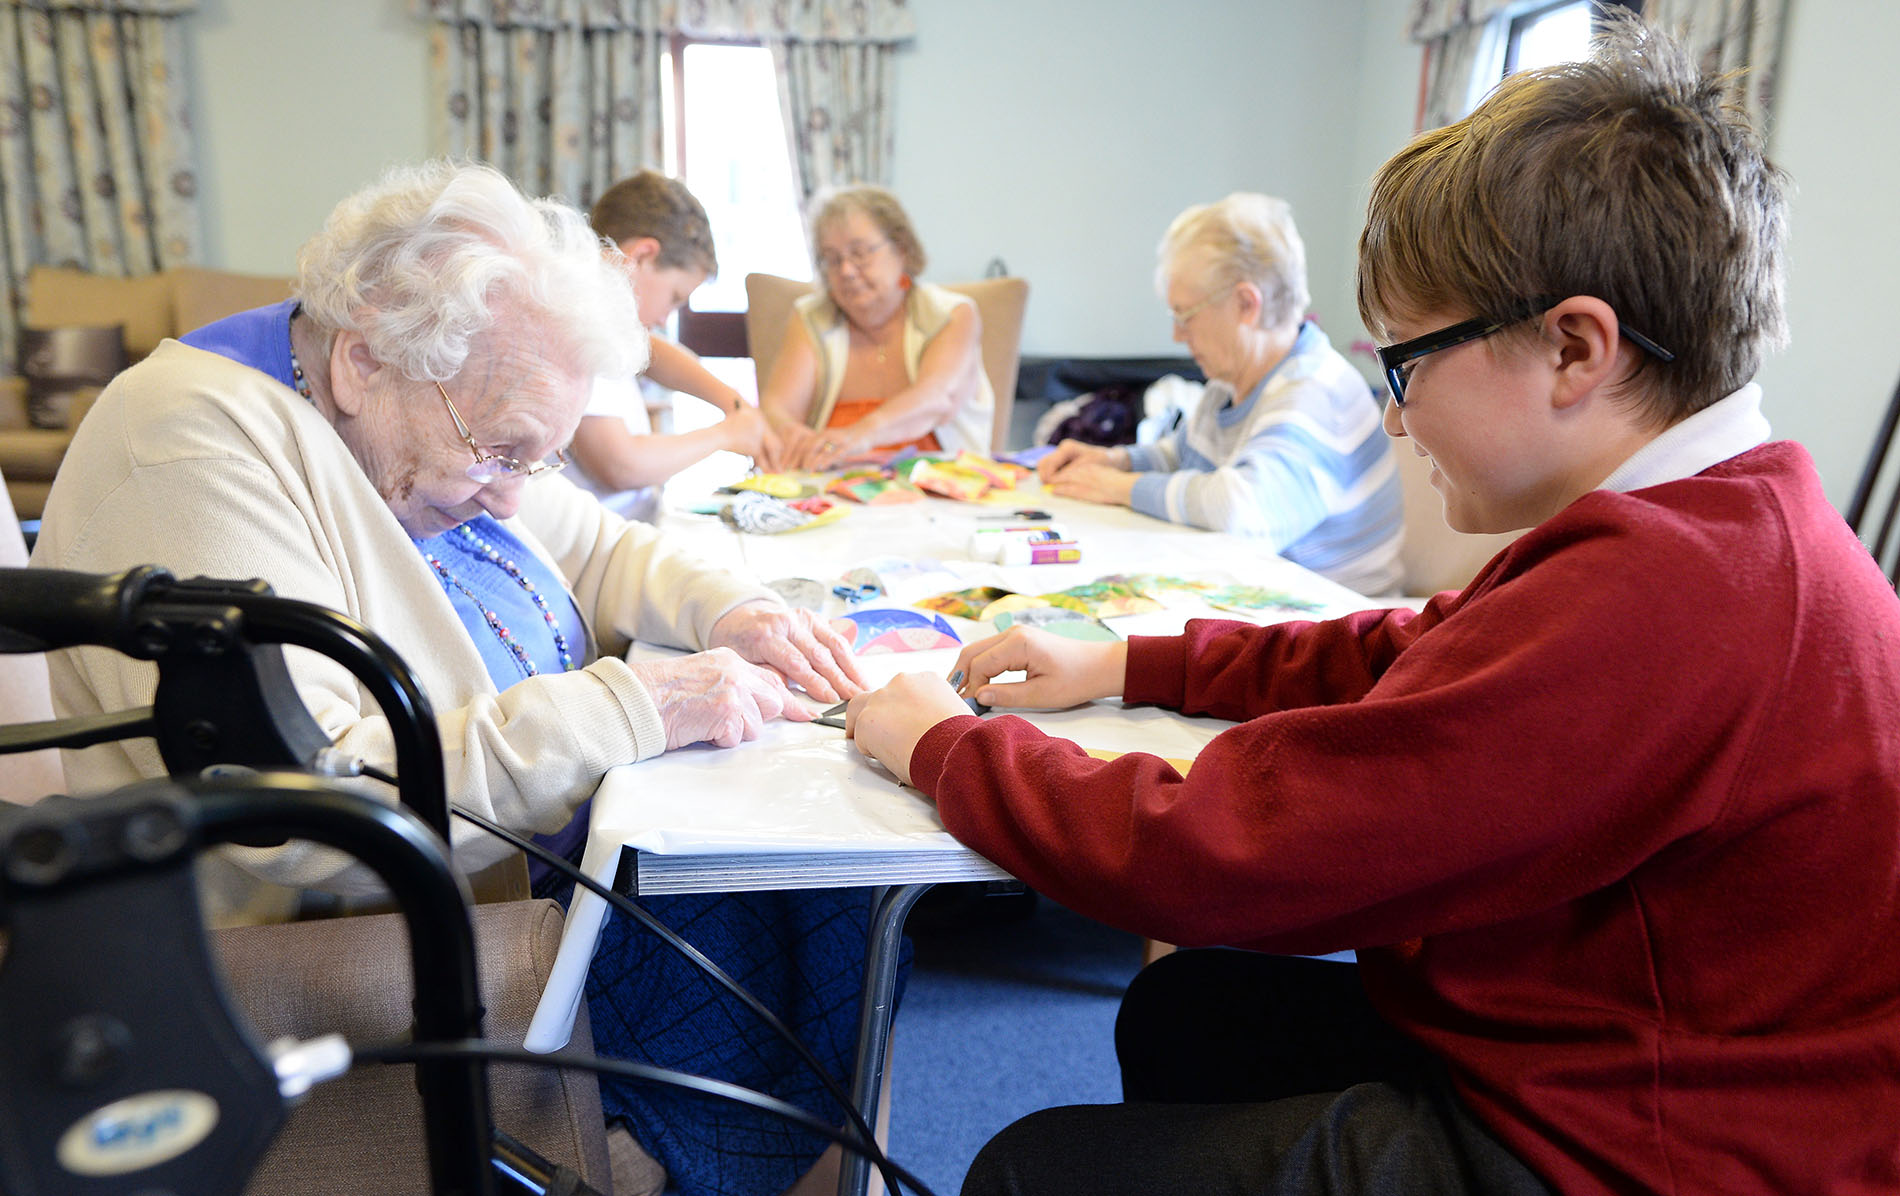 Primary school pupil during a creative session with a care home resident